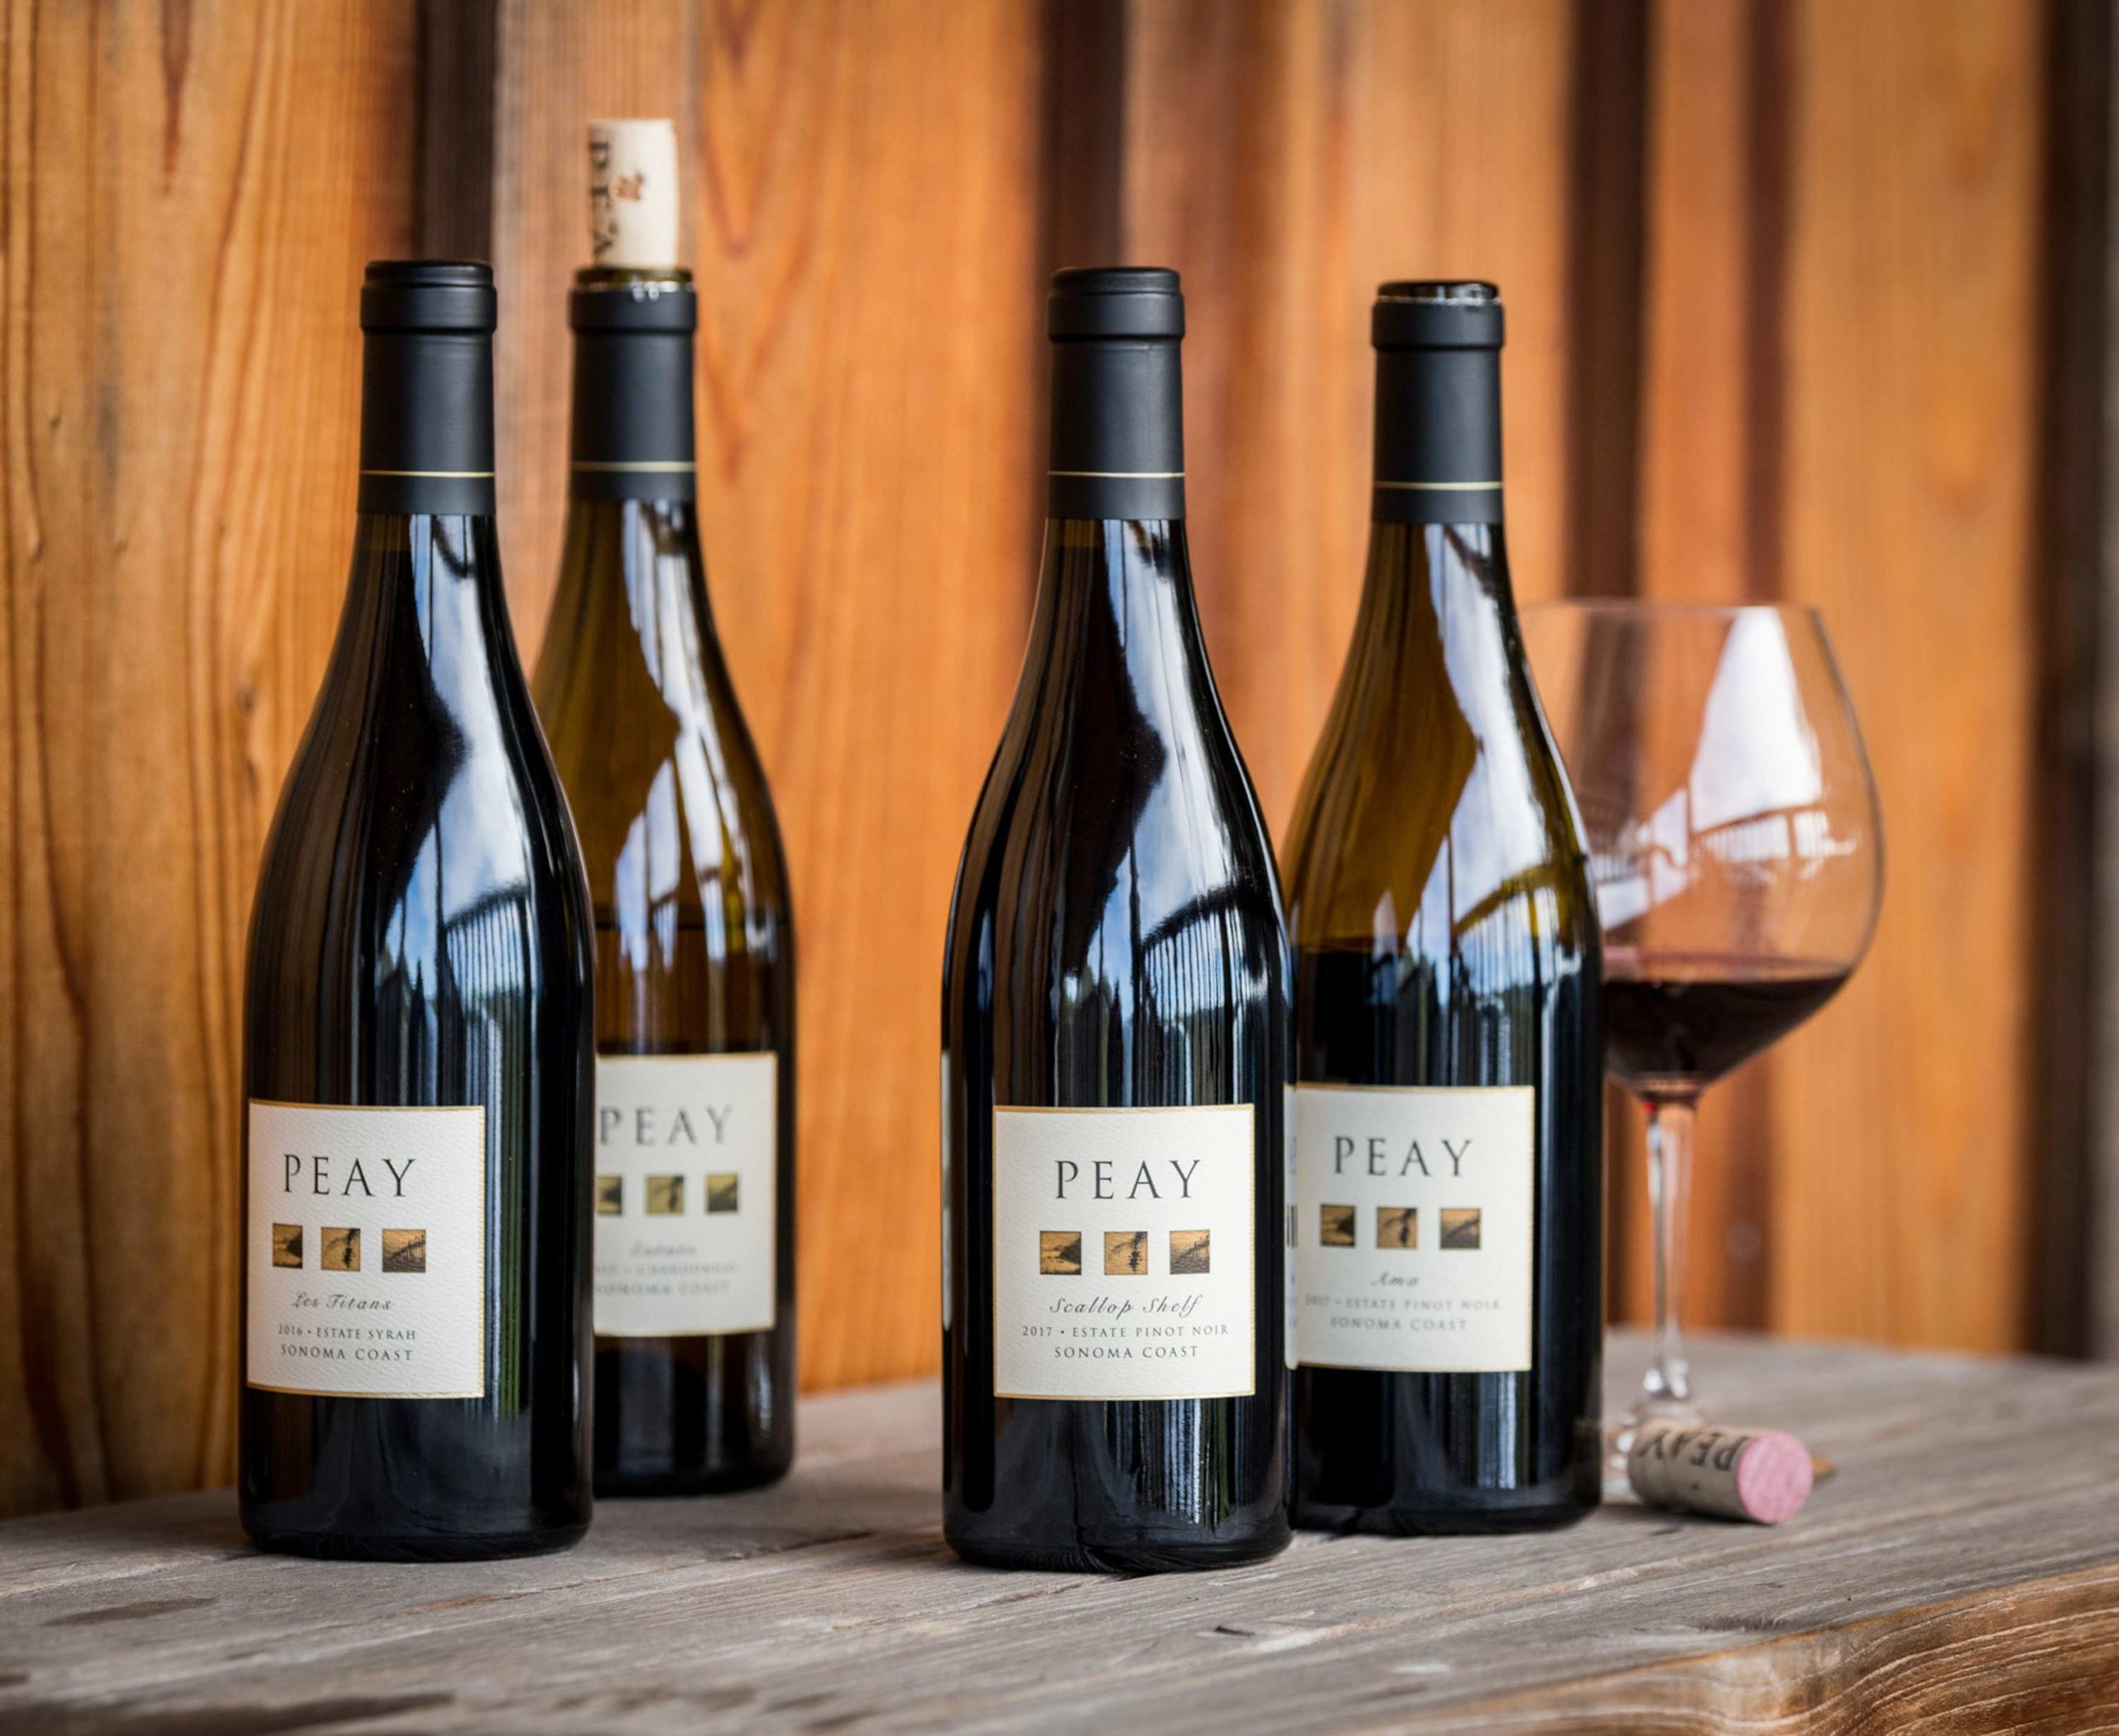 Featured image for Article: 2018 Peay Vineyards Pomarium Estate Pinot noir, Sonoma Coast